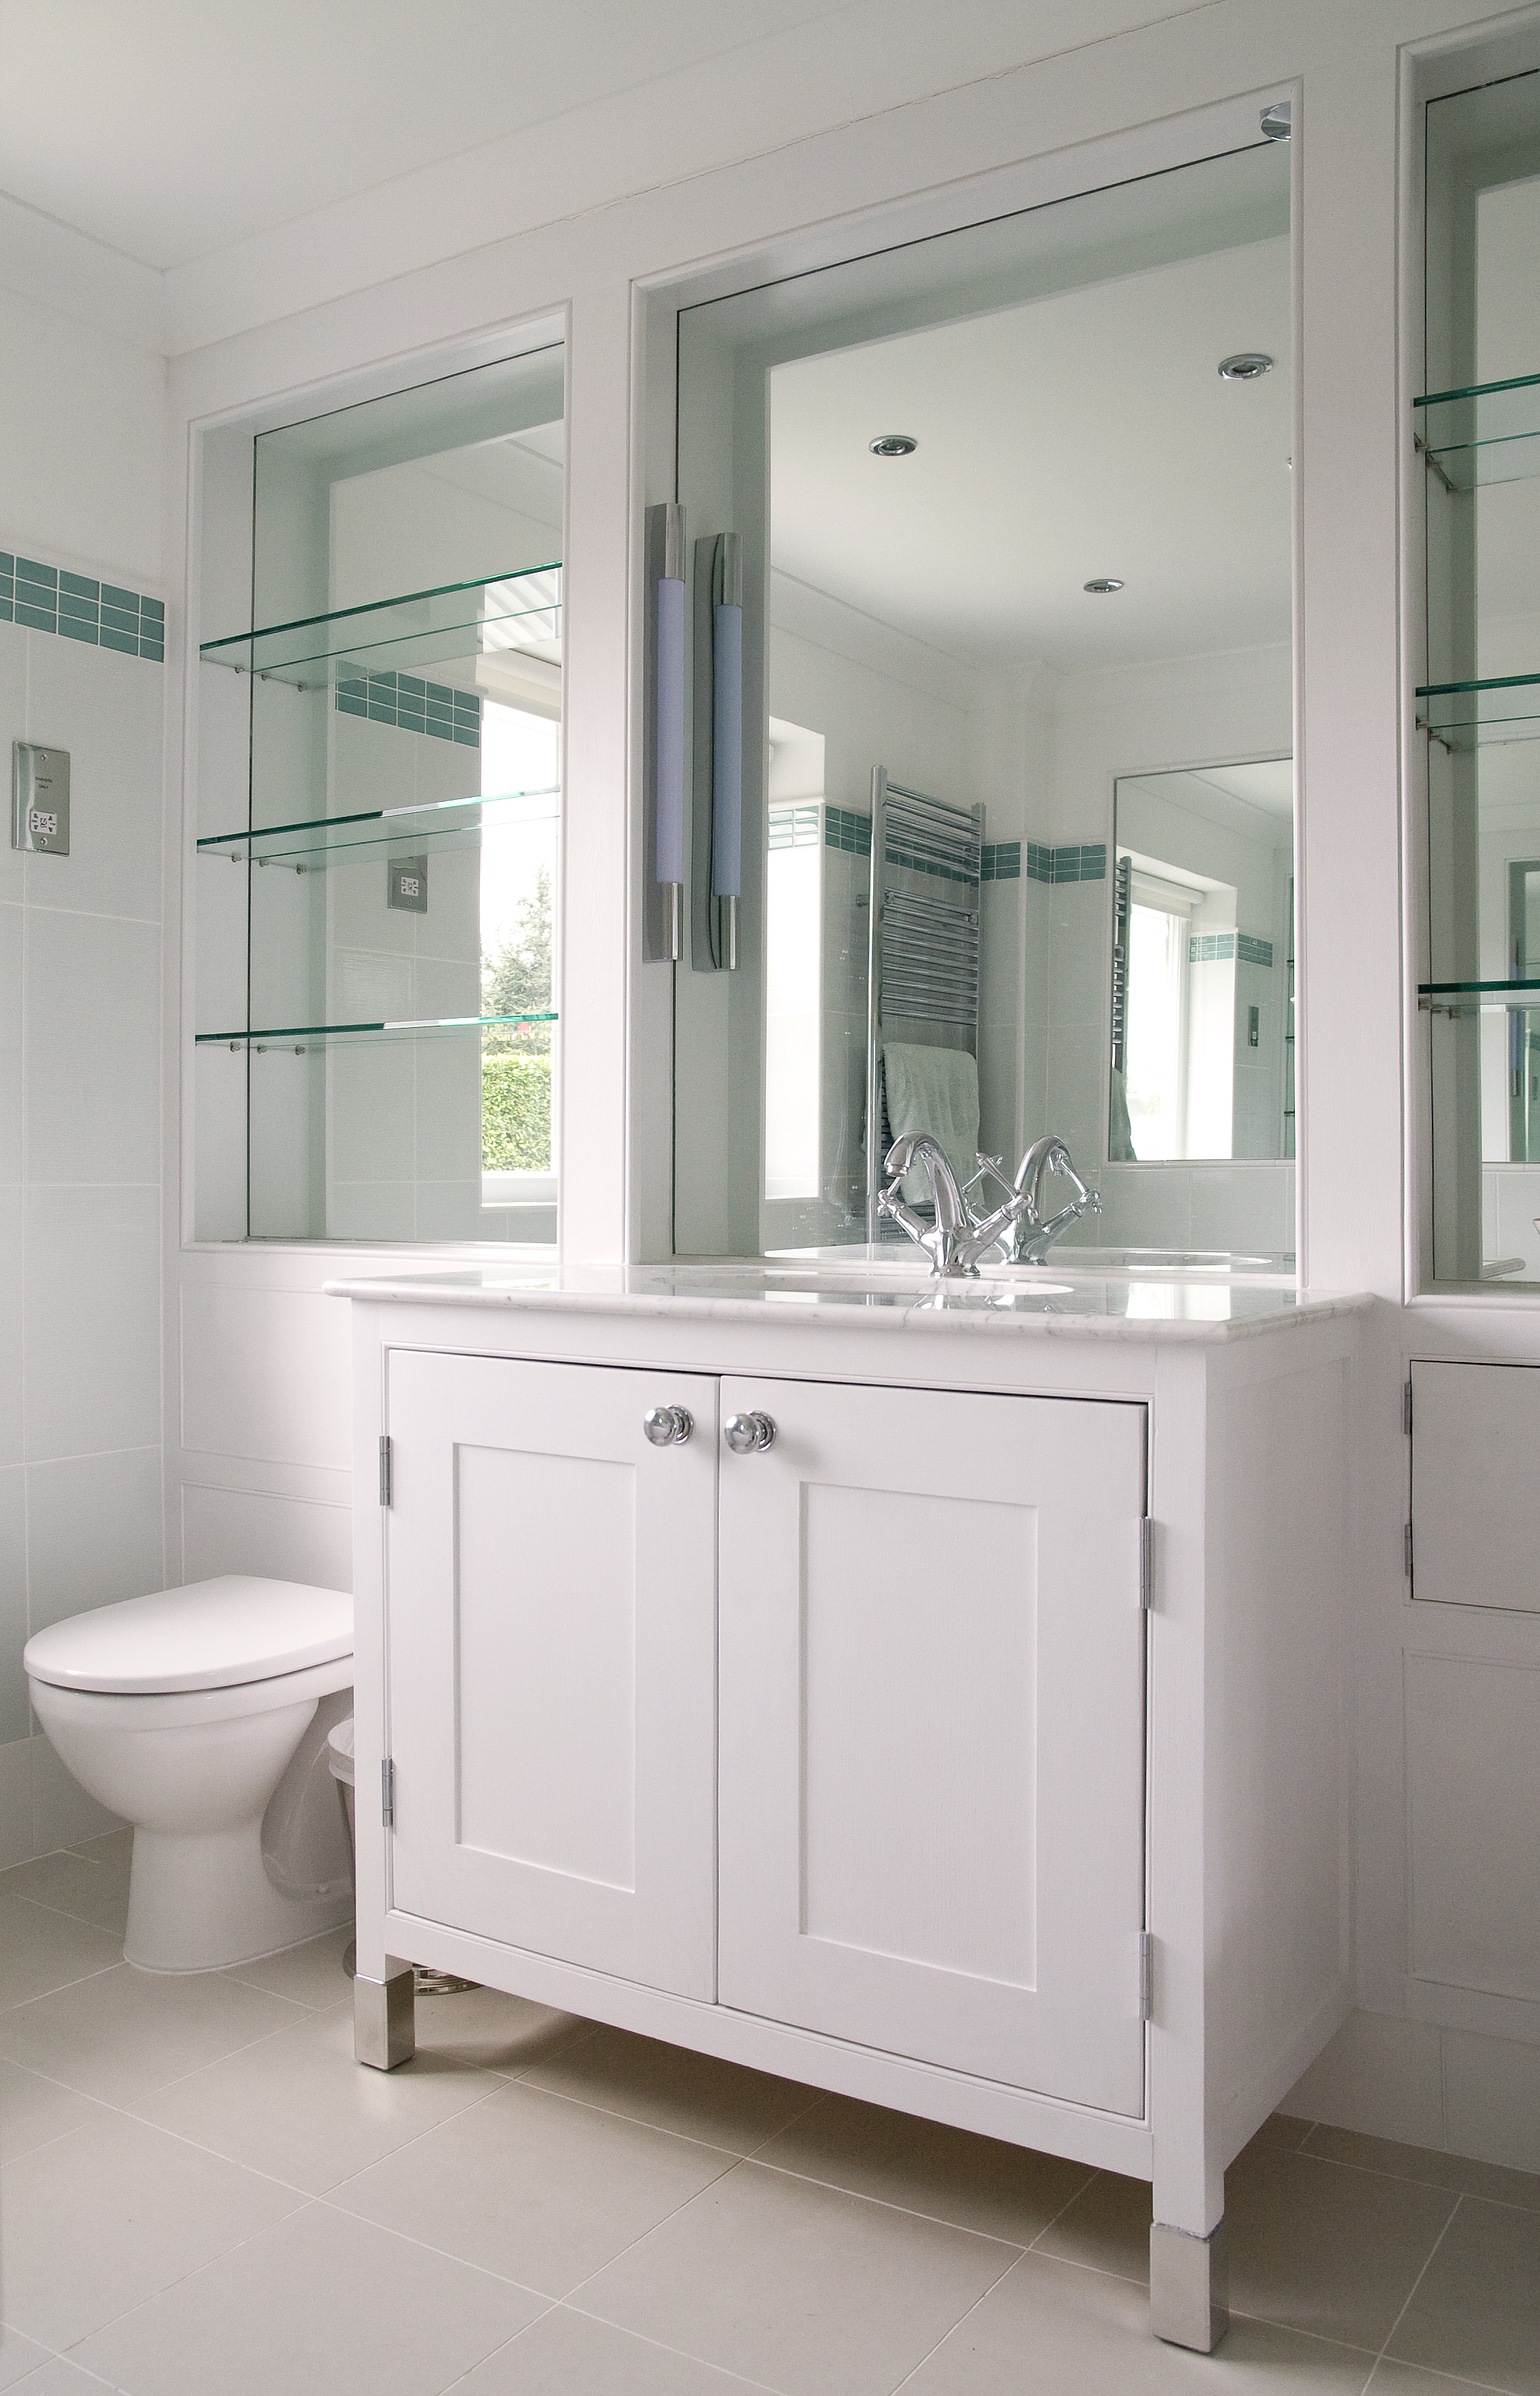 Refurbishment of a house in Somerton, Somerset - traditional bathroom